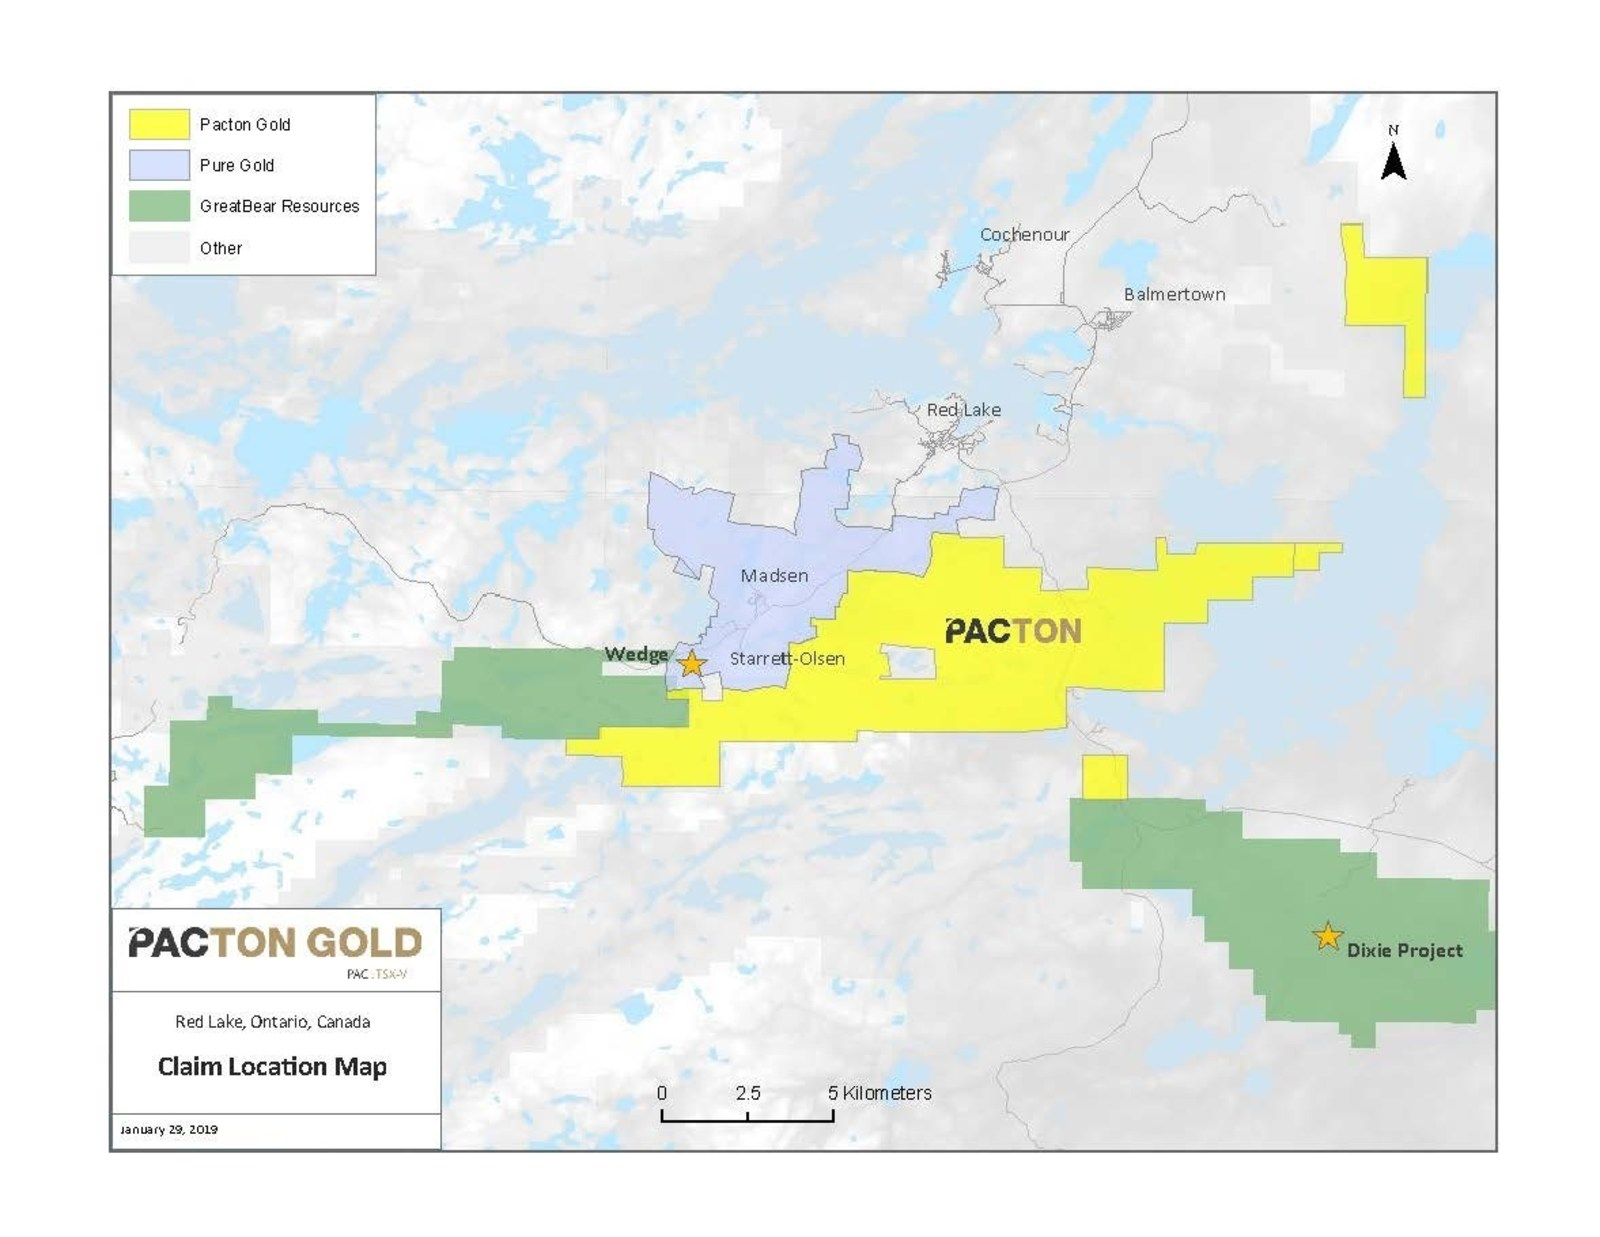 Map Of Canada 5 Great Lakes.Pacton Gold Commences Heliborne Magnetic Survery At Red Lake Gold